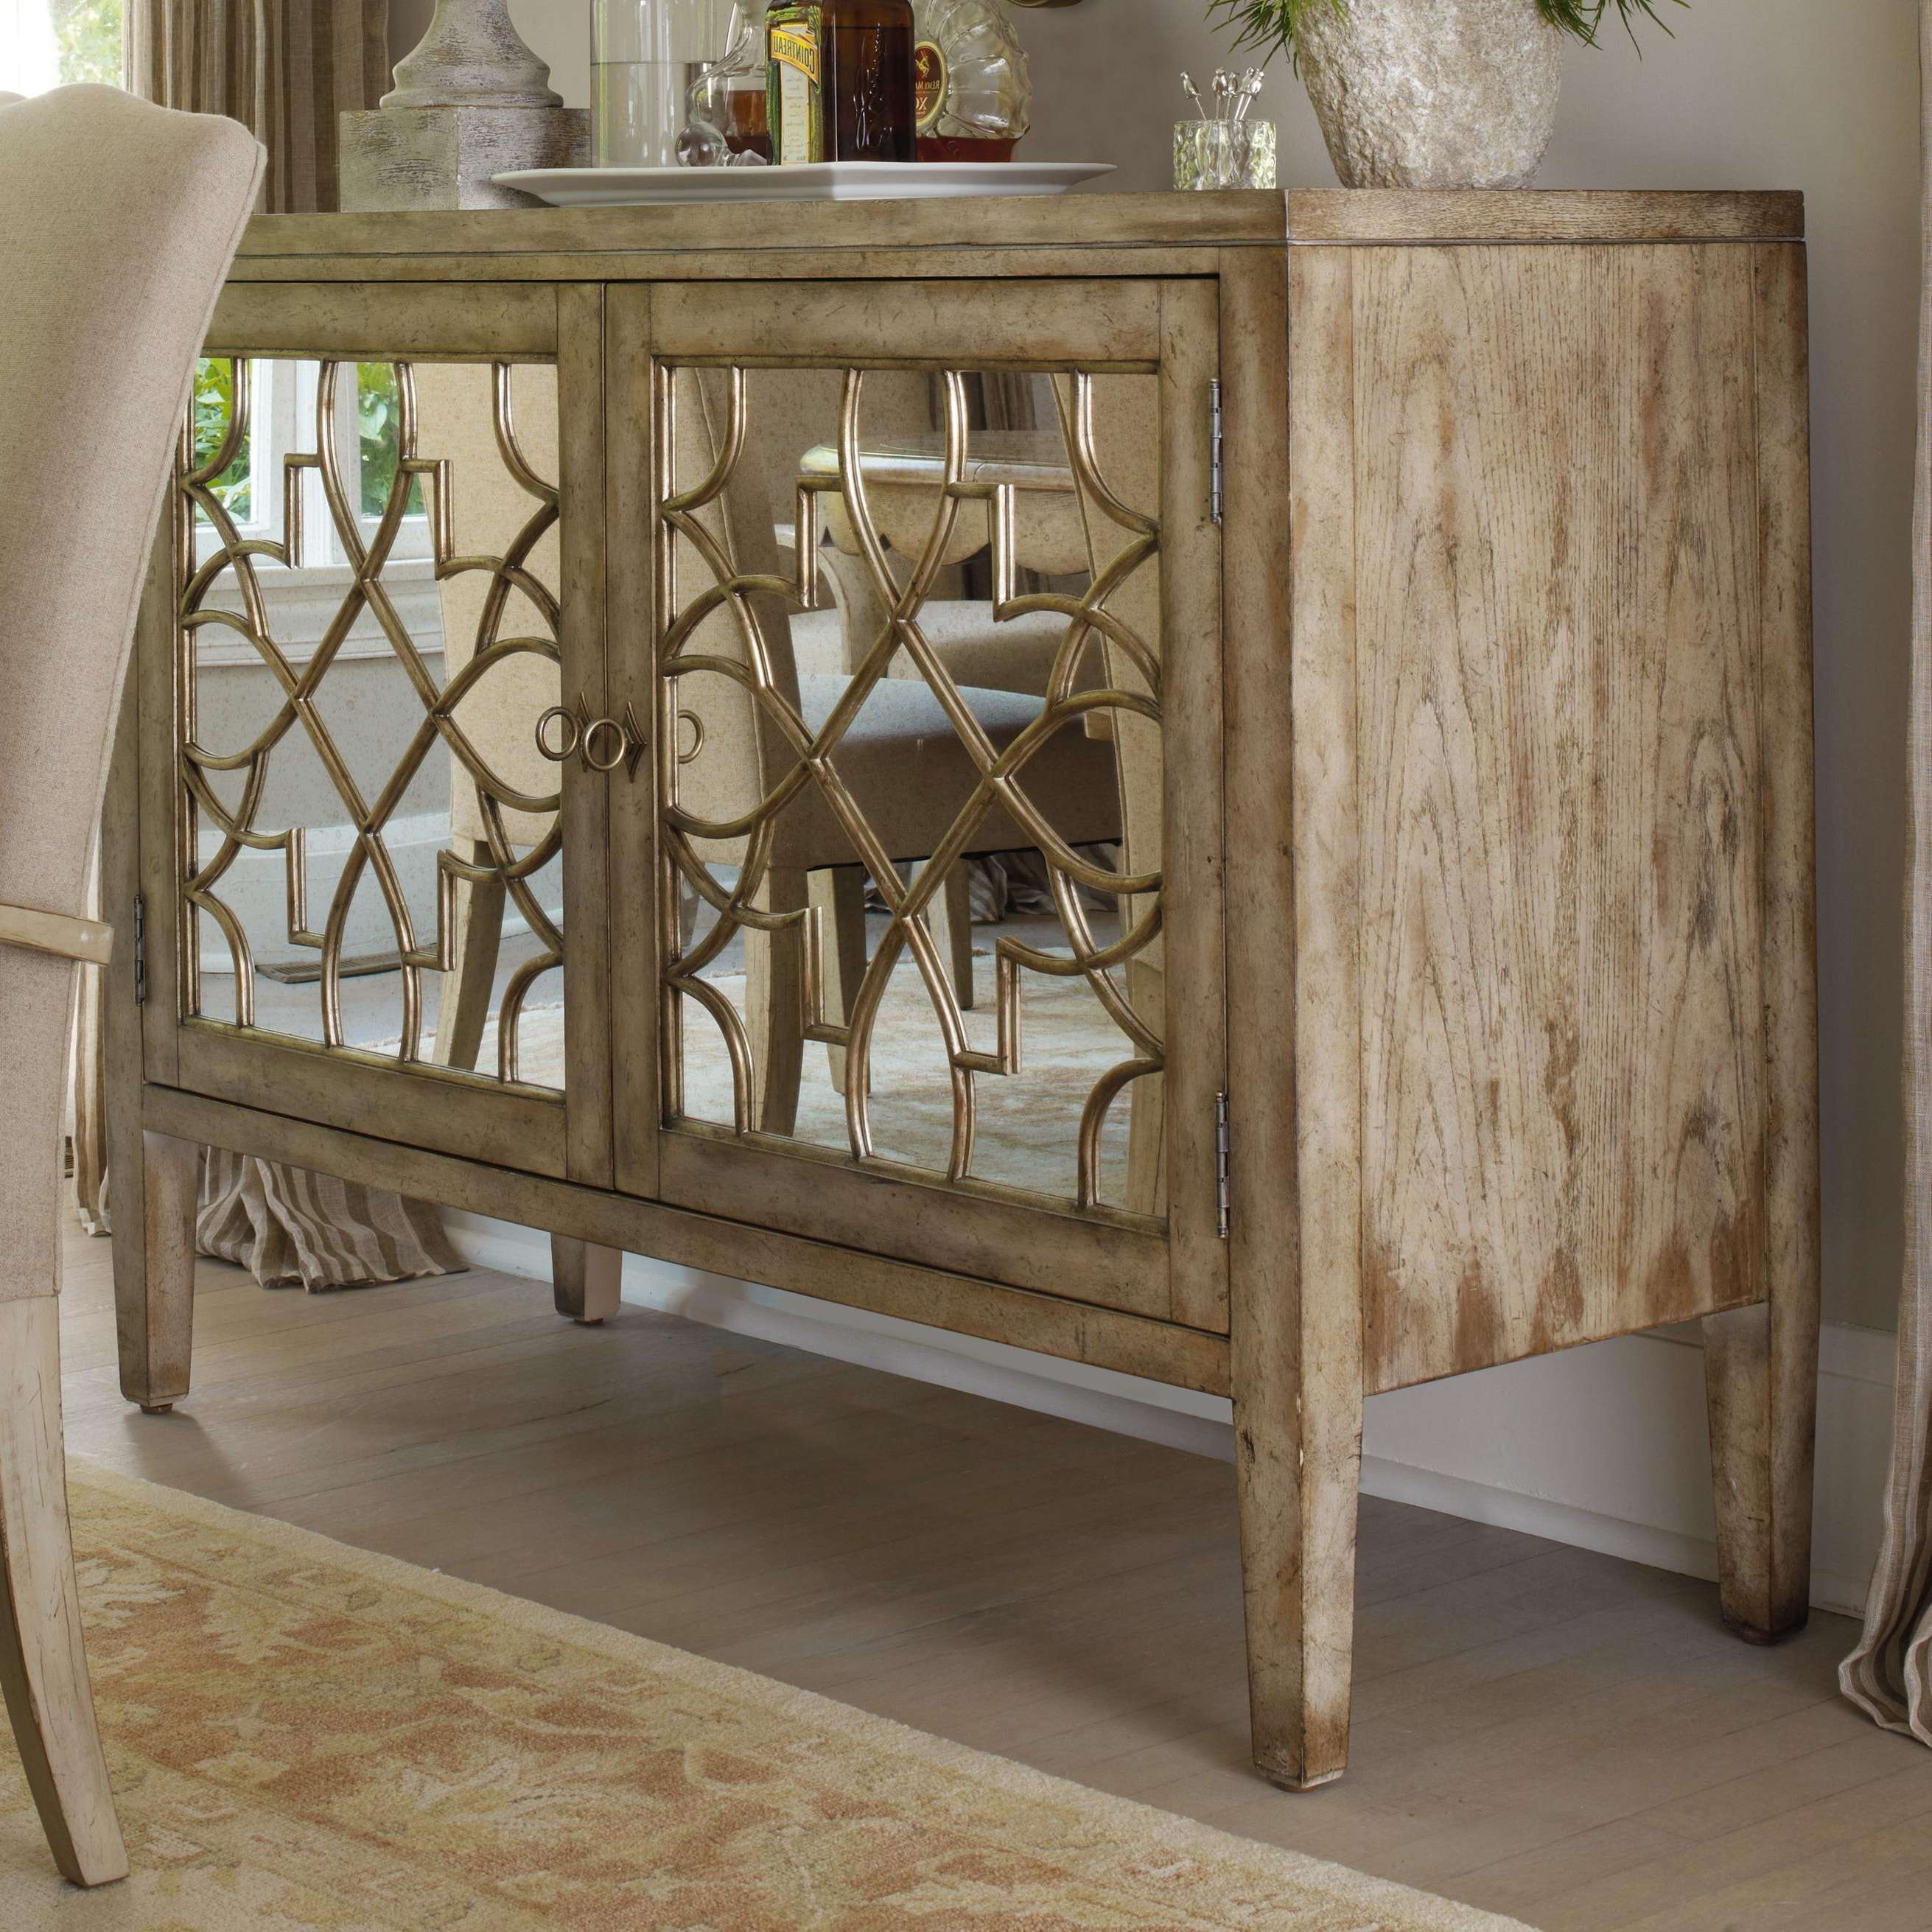 Hooker Furniture Sanctuary Two Door Mirrored Console – Ahfa With Regard To Mirrored Buffet Sideboards (View 6 of 20)